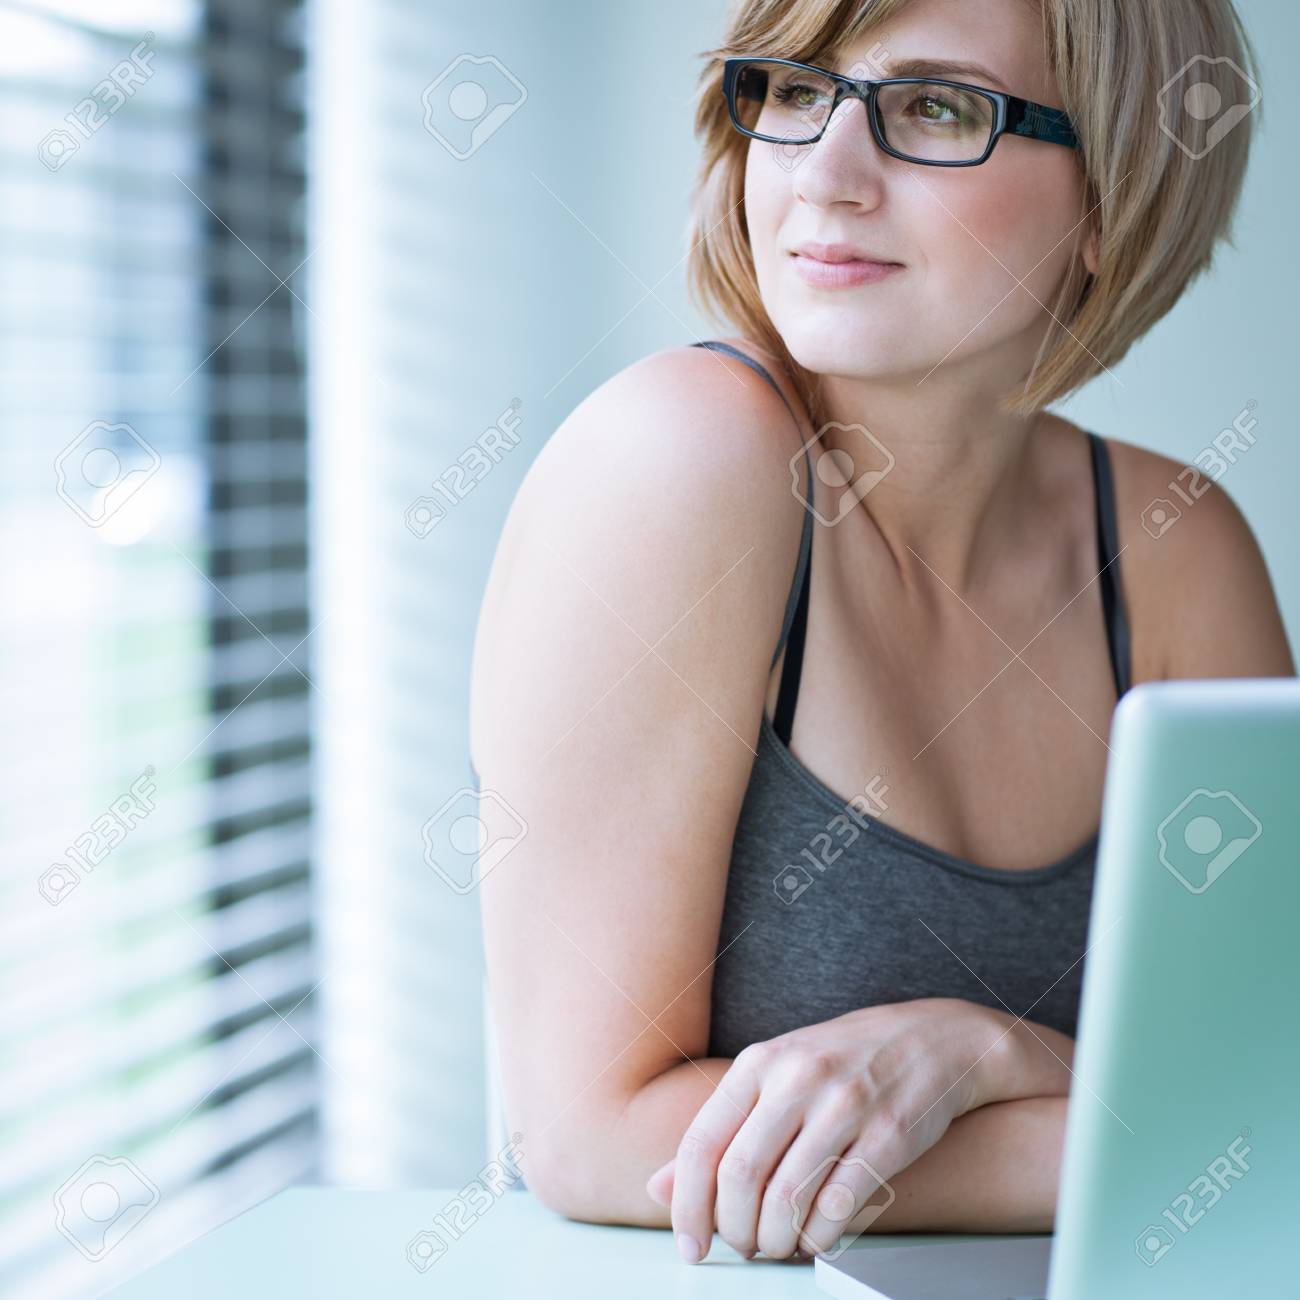 Portrait of a young woman pensively looking out of the window while sitting in front of her laptop Stock Photo - 10895210